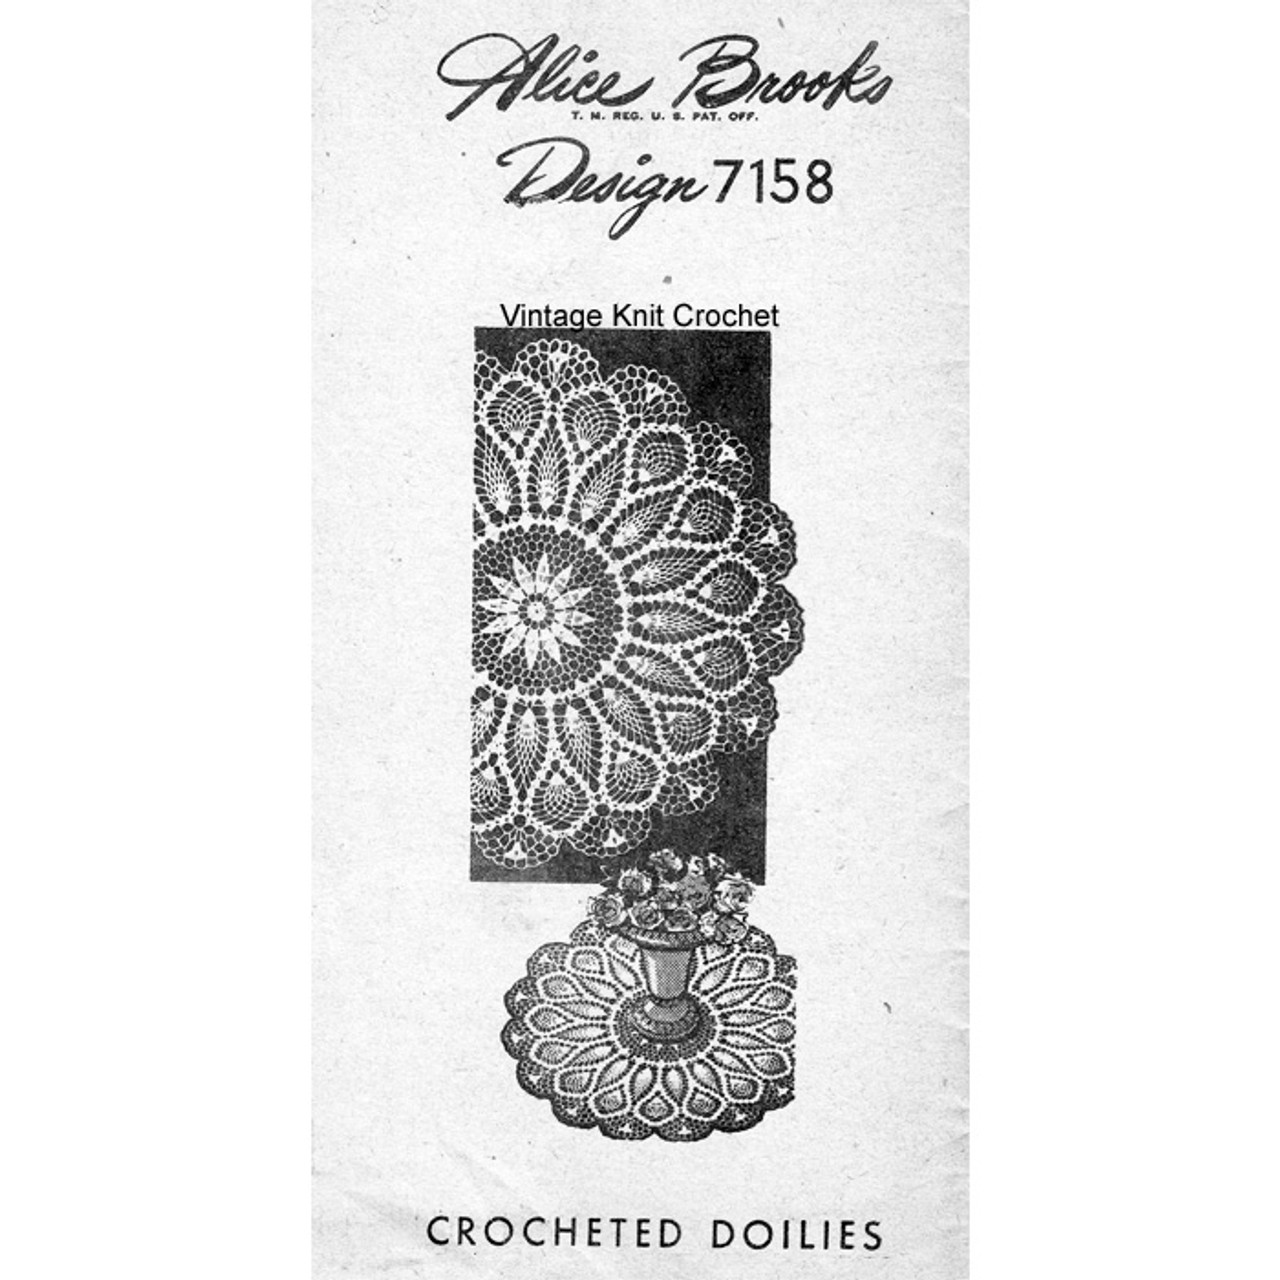 Crocheted Pineapple Doilies Pattern in six sizes; design 7158